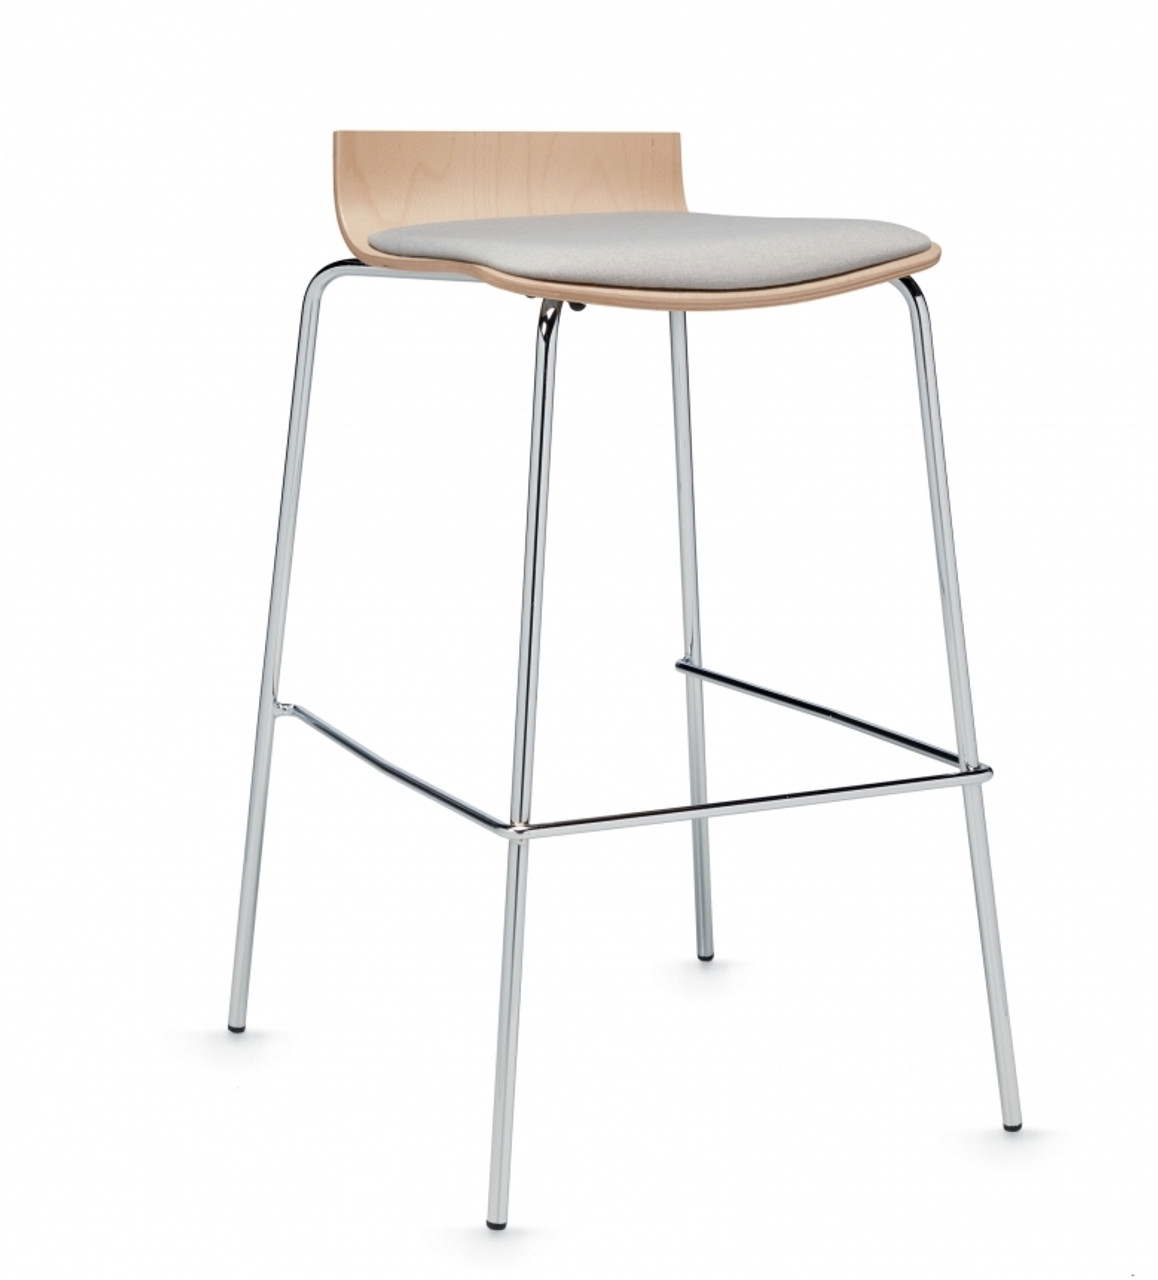 Strange Global Sas Low Back Bar Stool With Upholstered Seat Gmtry Best Dining Table And Chair Ideas Images Gmtryco